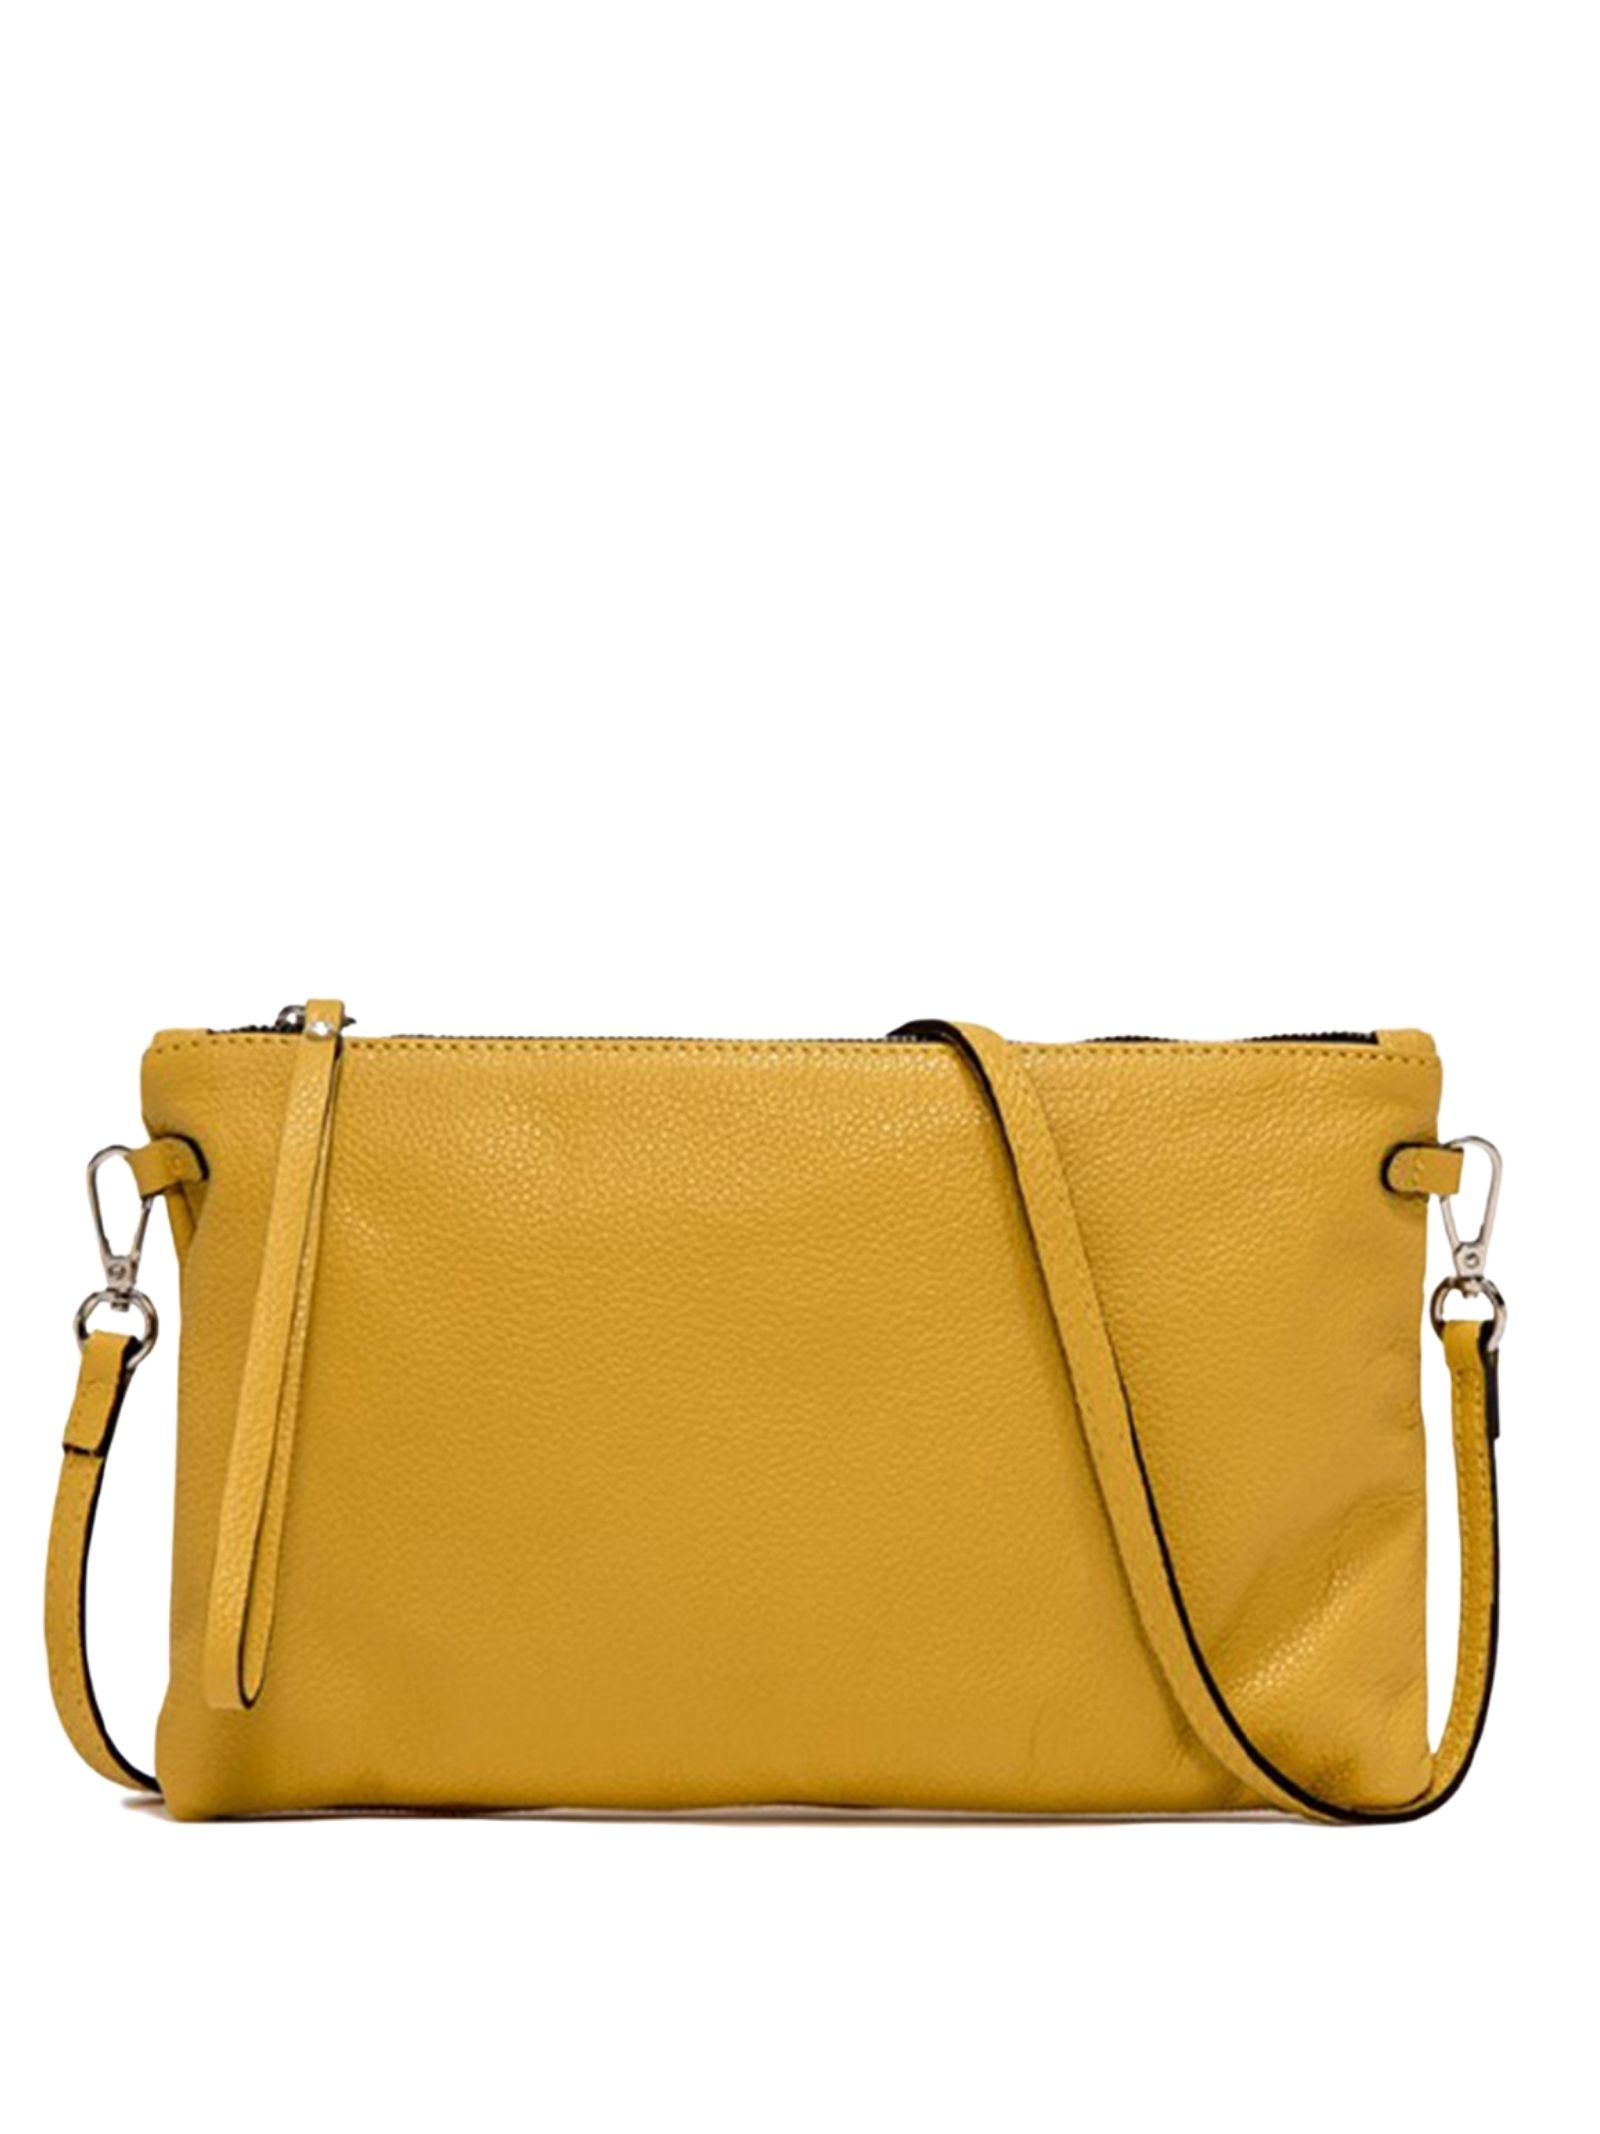 Big Clutch Hermy Clutch Bag In Leather And Adjustable And Removable Shoulder Strap Gianni Chiarini | Bags and backpacks | BS369511040